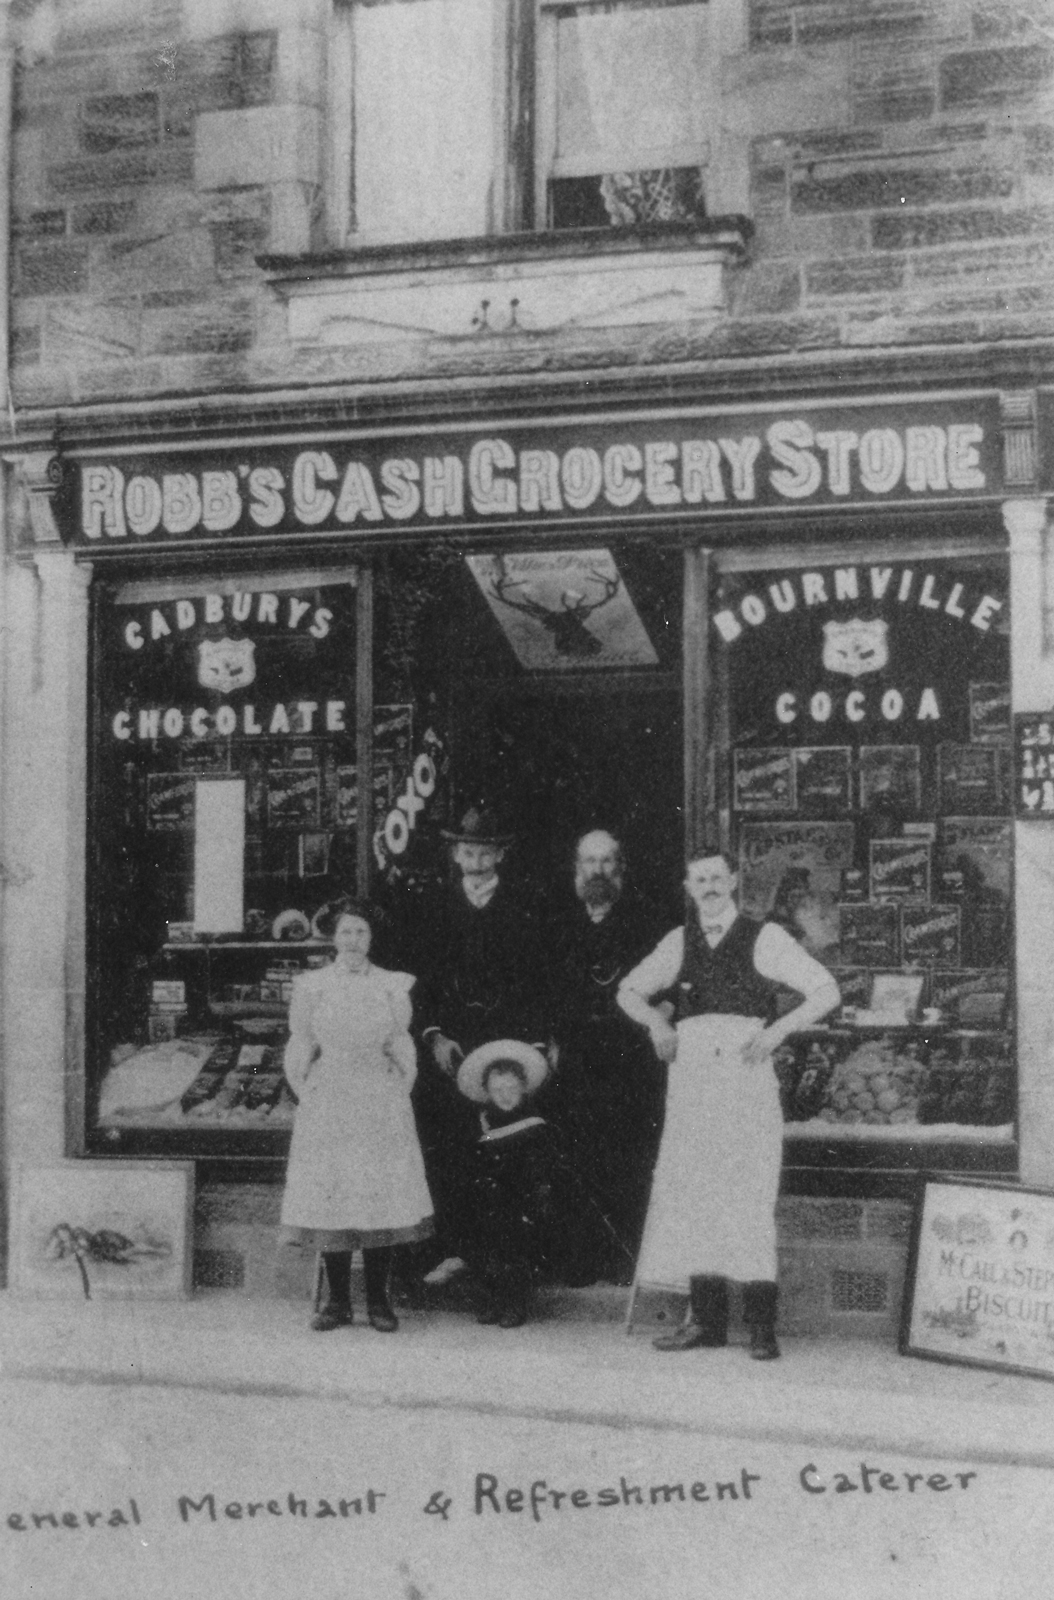 Archive photograph of 3 men, a young lady and child standing in the doorway of Robbs Cash Grocery Store